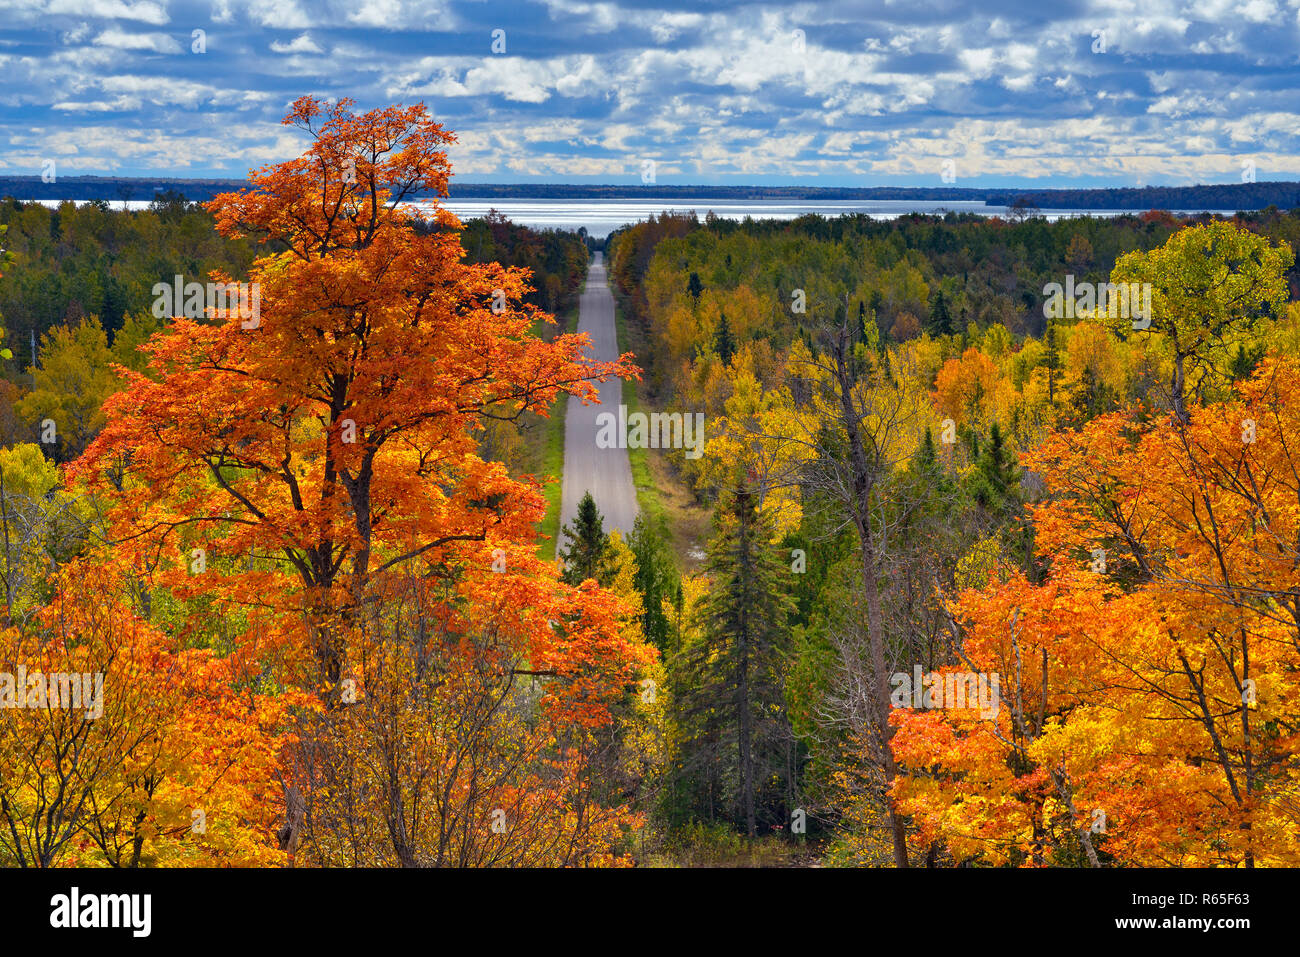 Autumn maple trees overlooking Monument Road from Jerusalem Hill, Manitoulin Island, Ontario, Canada - Stock Image